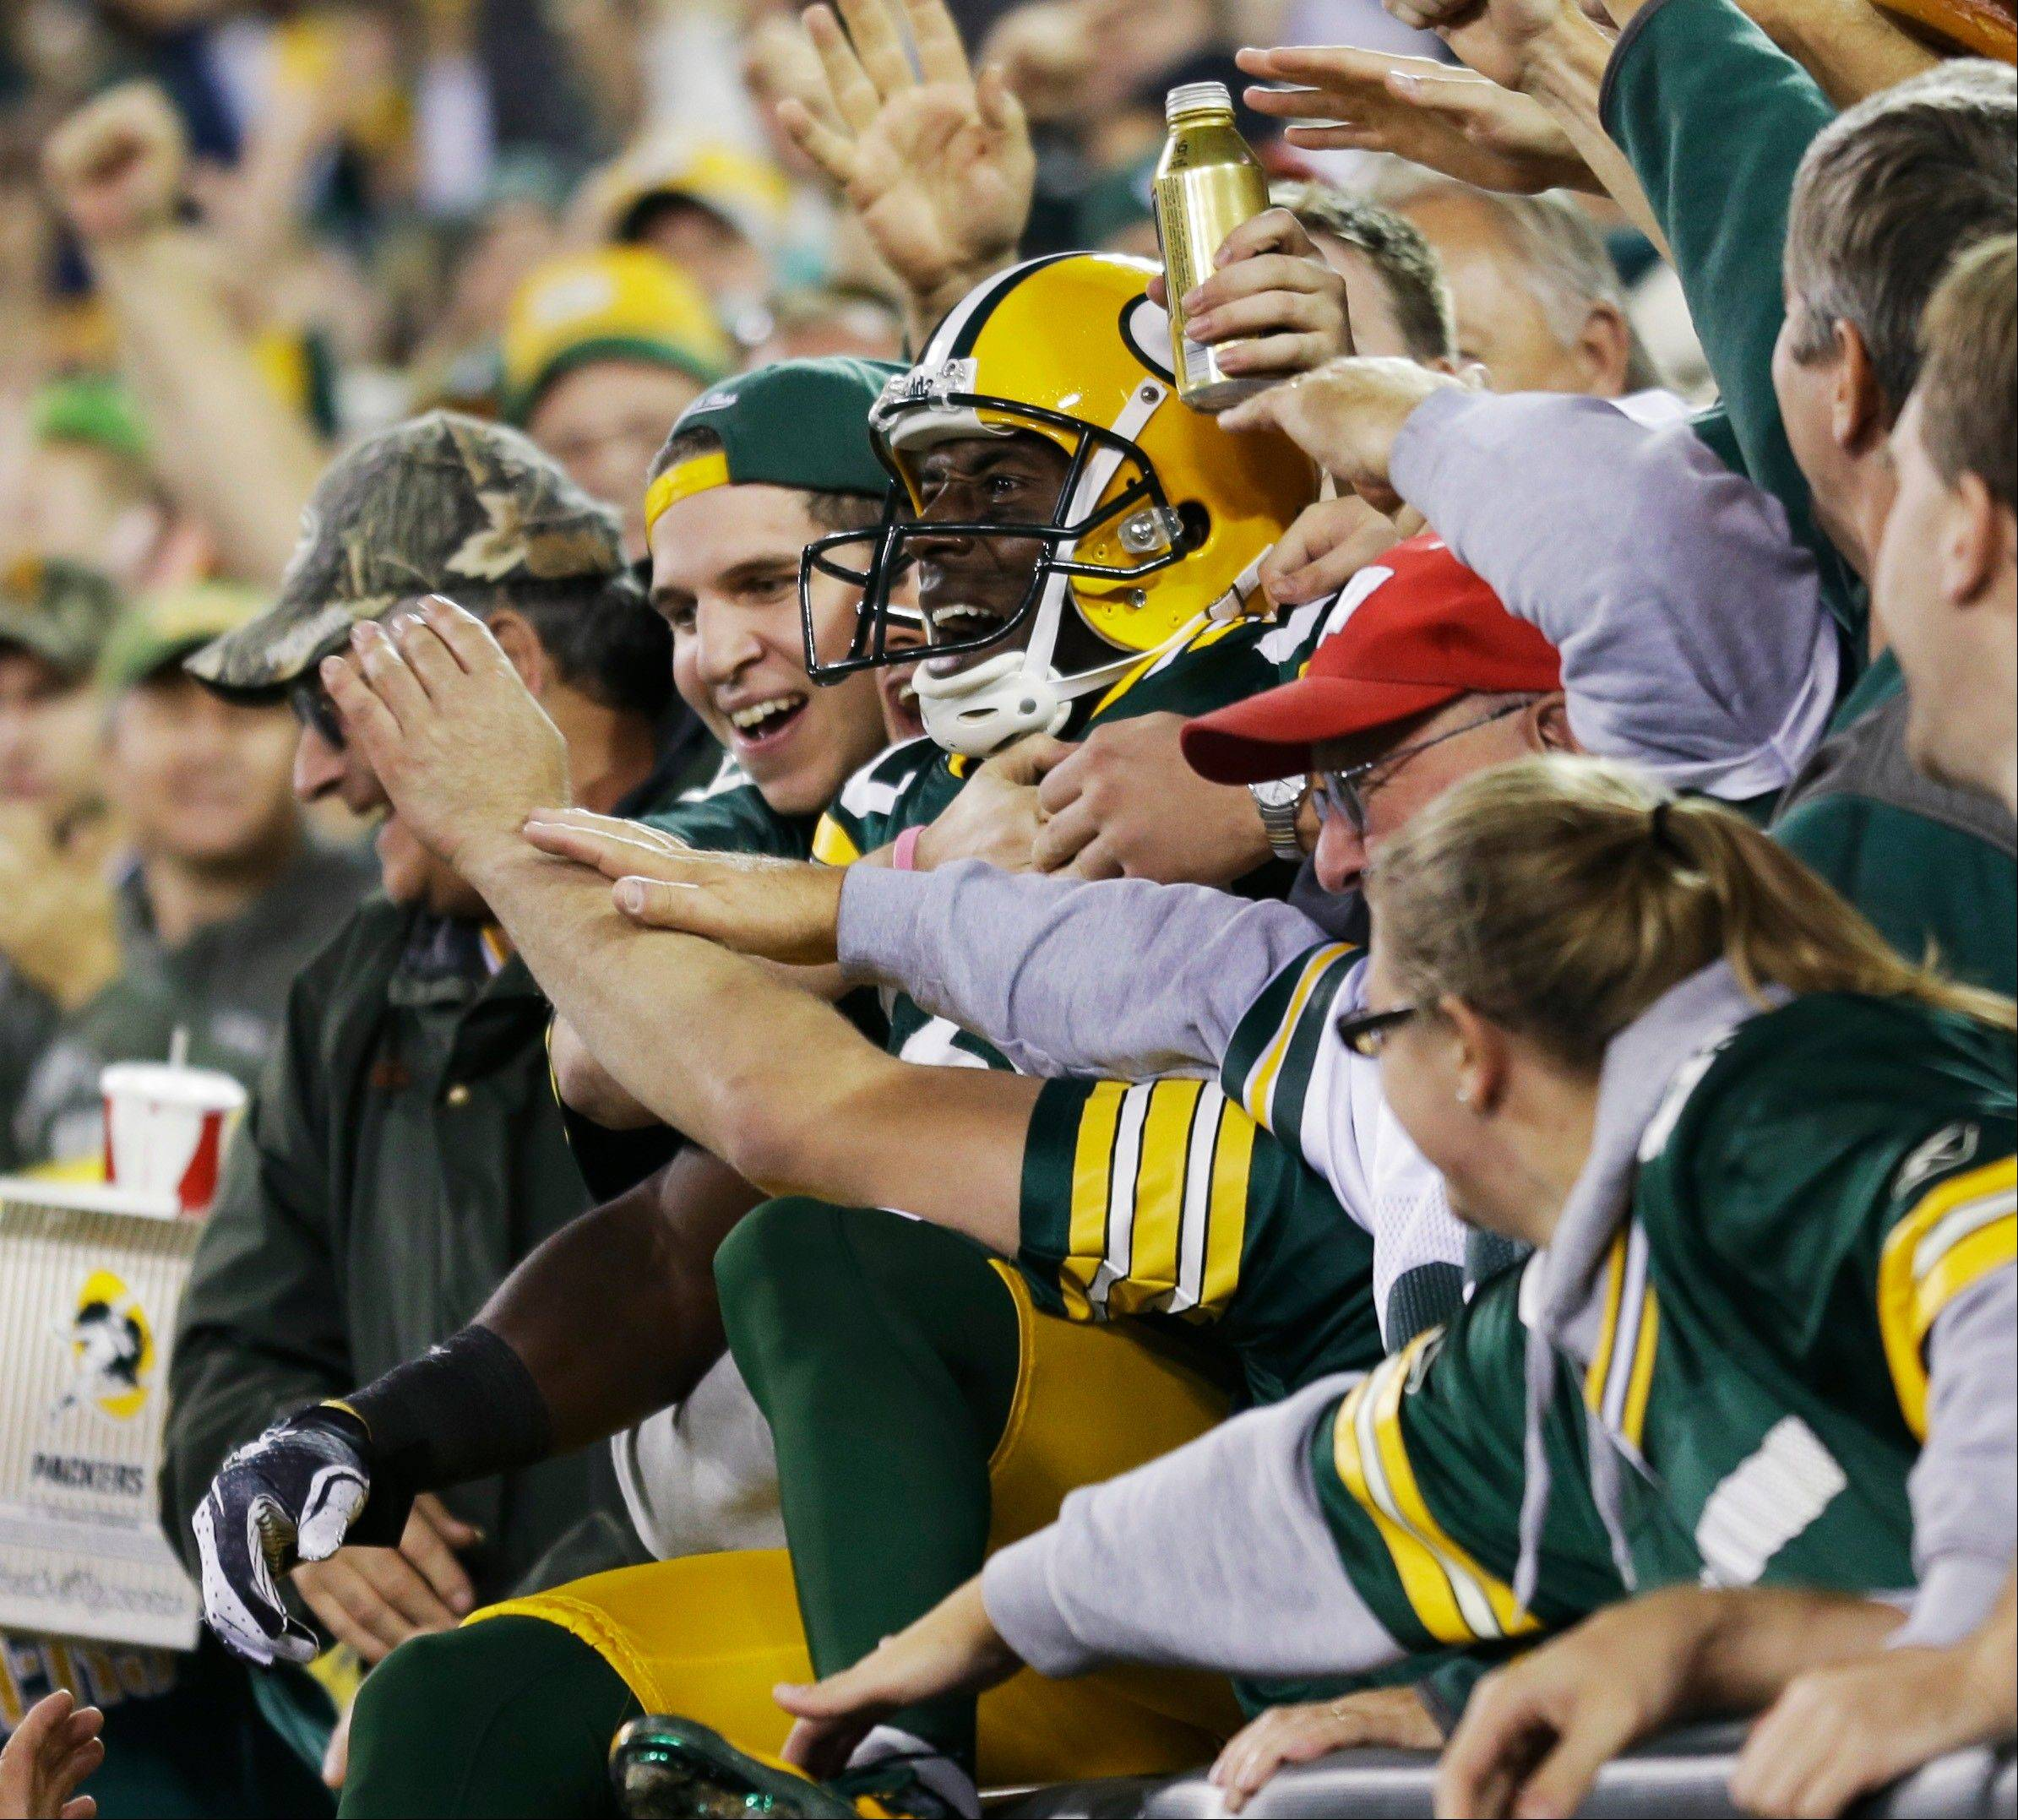 Green Bay Packers' Donald Driver celebrates with fans after catching a touchdown pass during the second half.